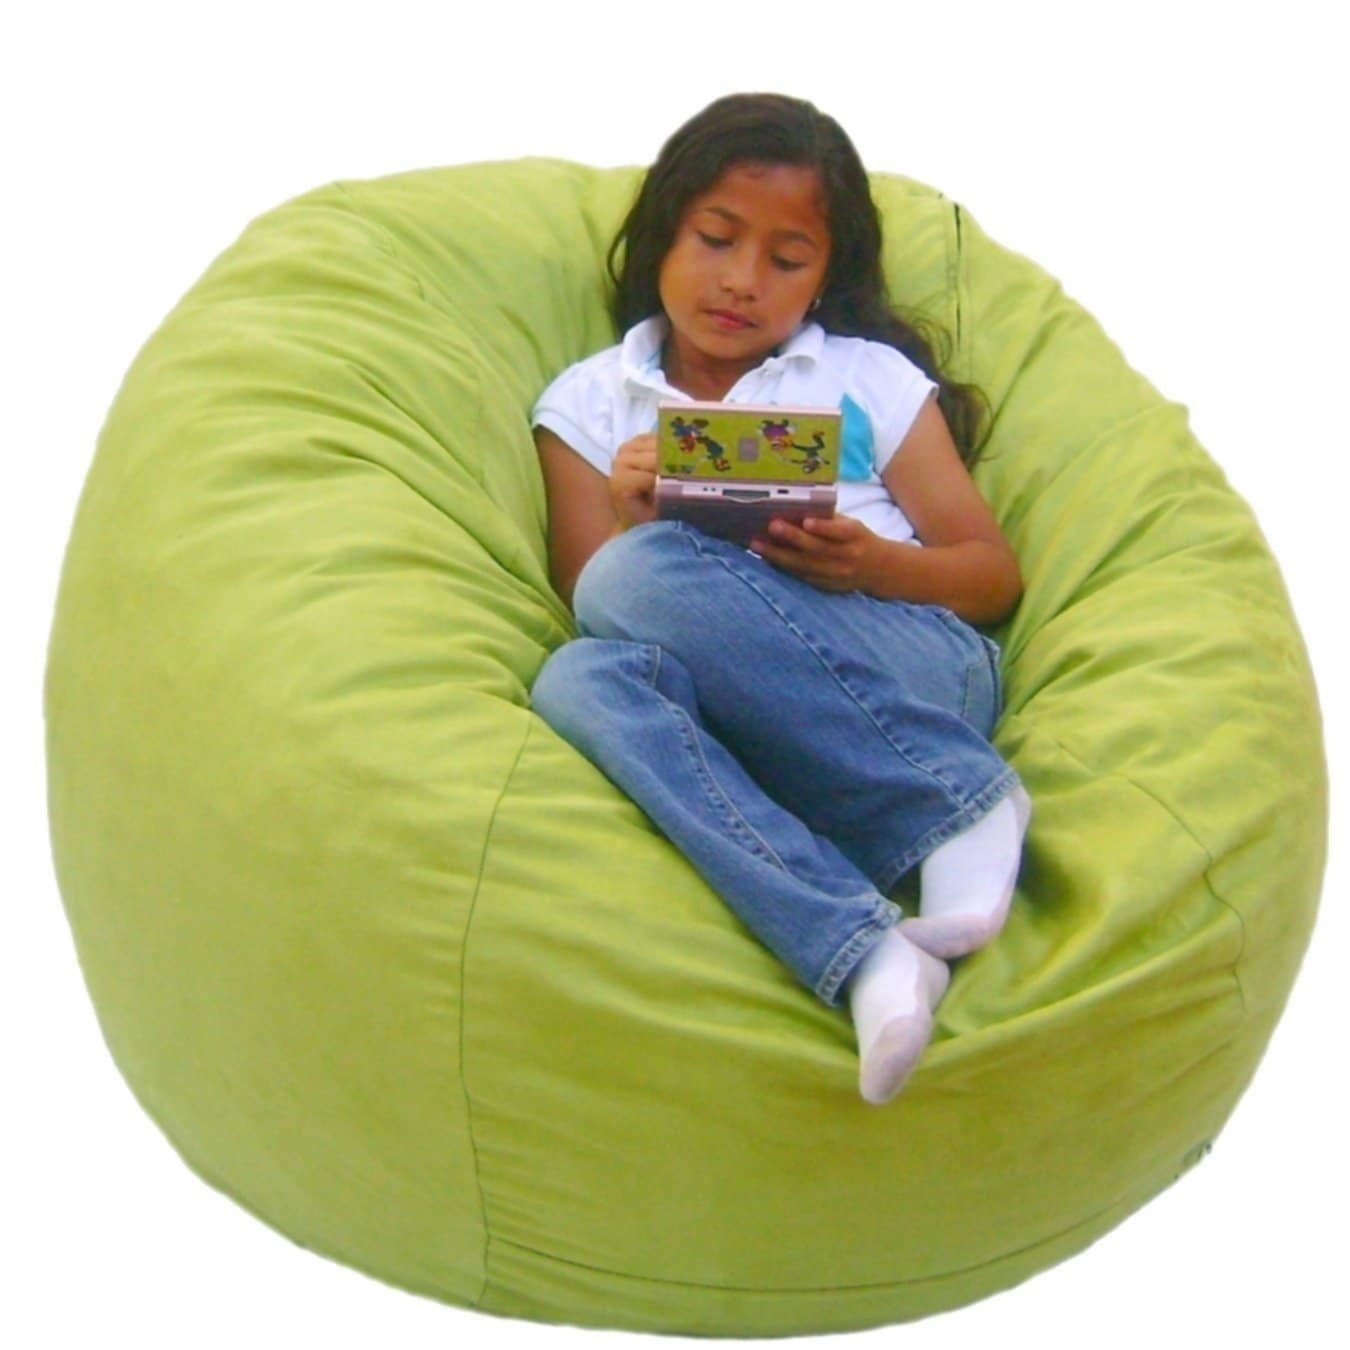 Vinyl Bean Bag Chairs Picture